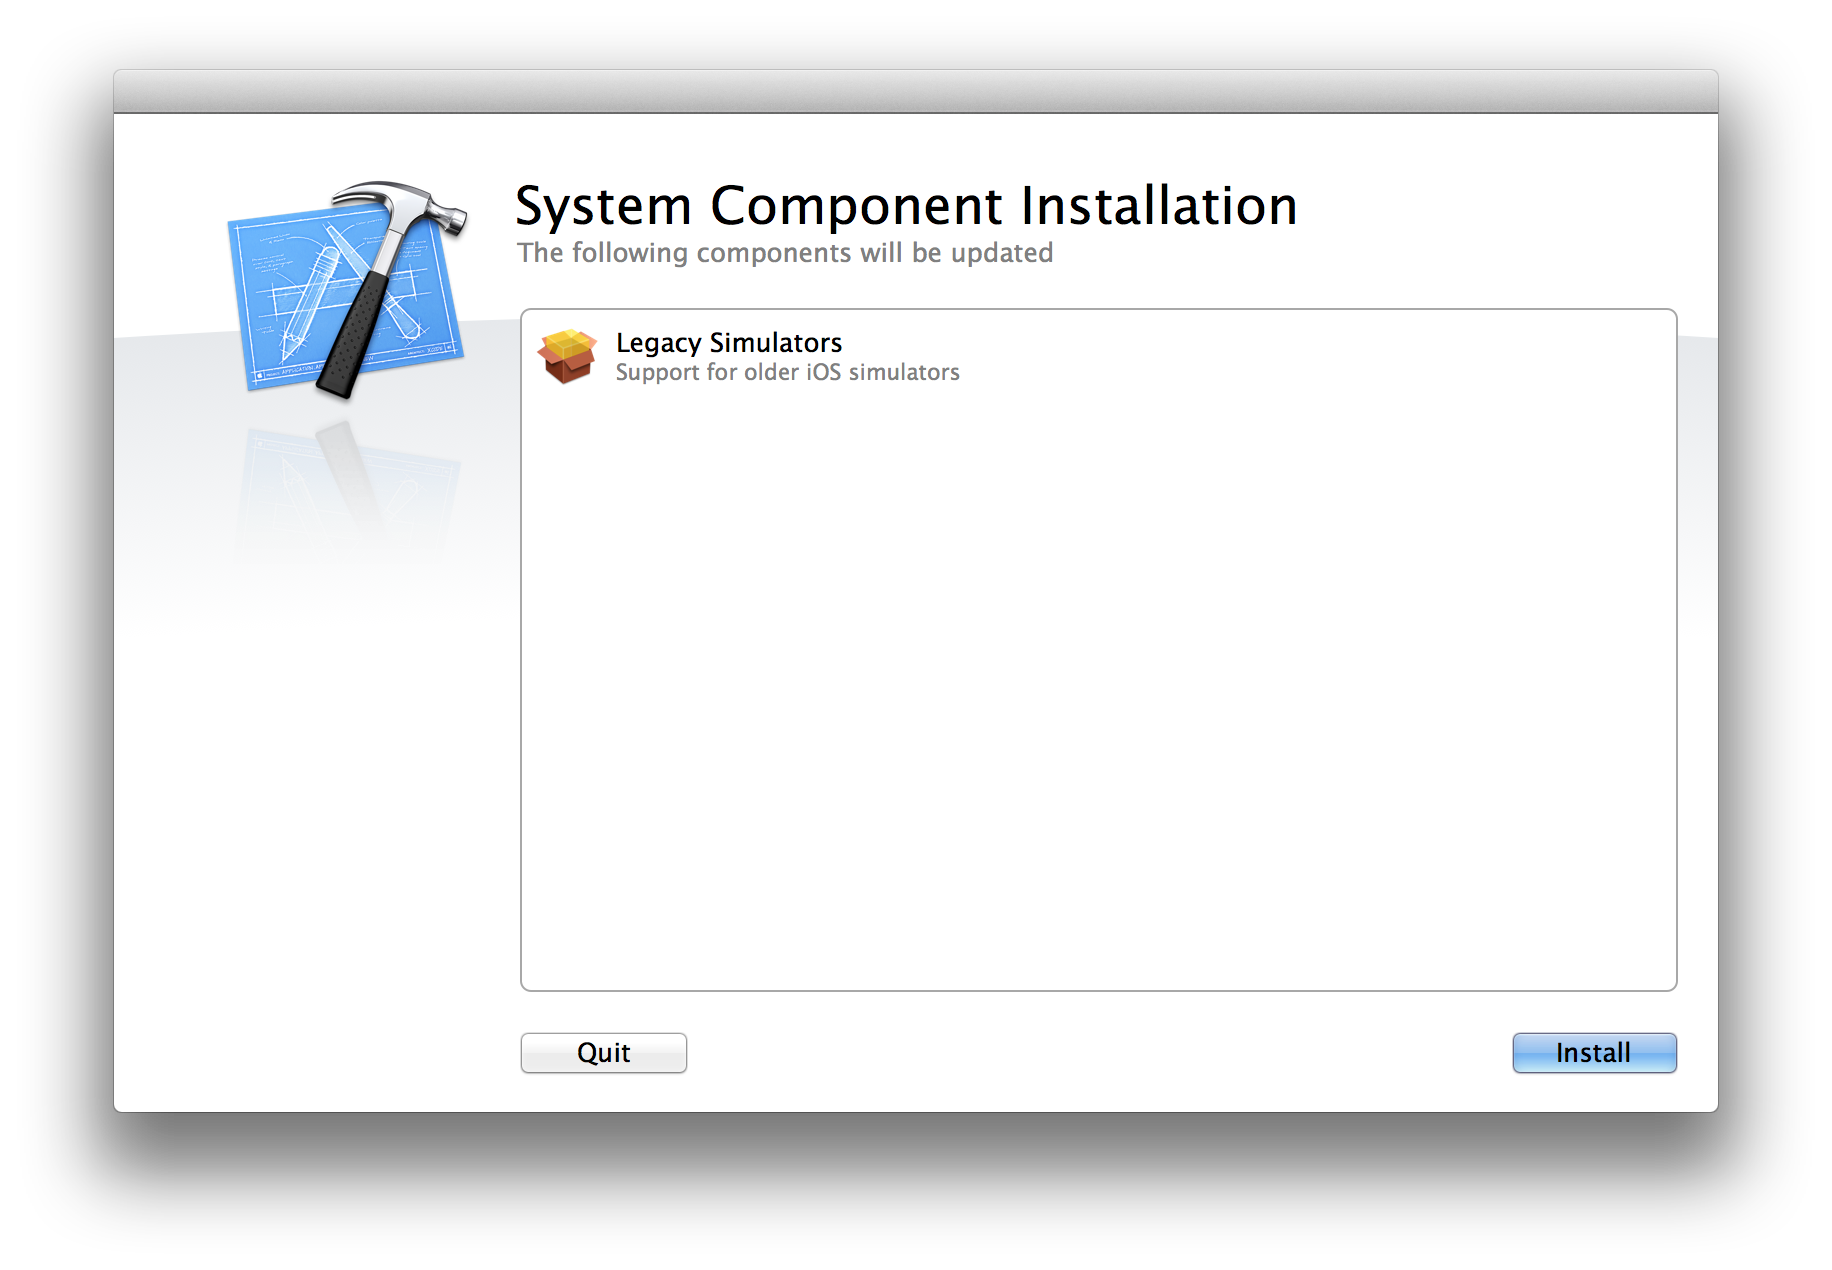 Xcode deployment: The dvtdownloadableindex and iOS